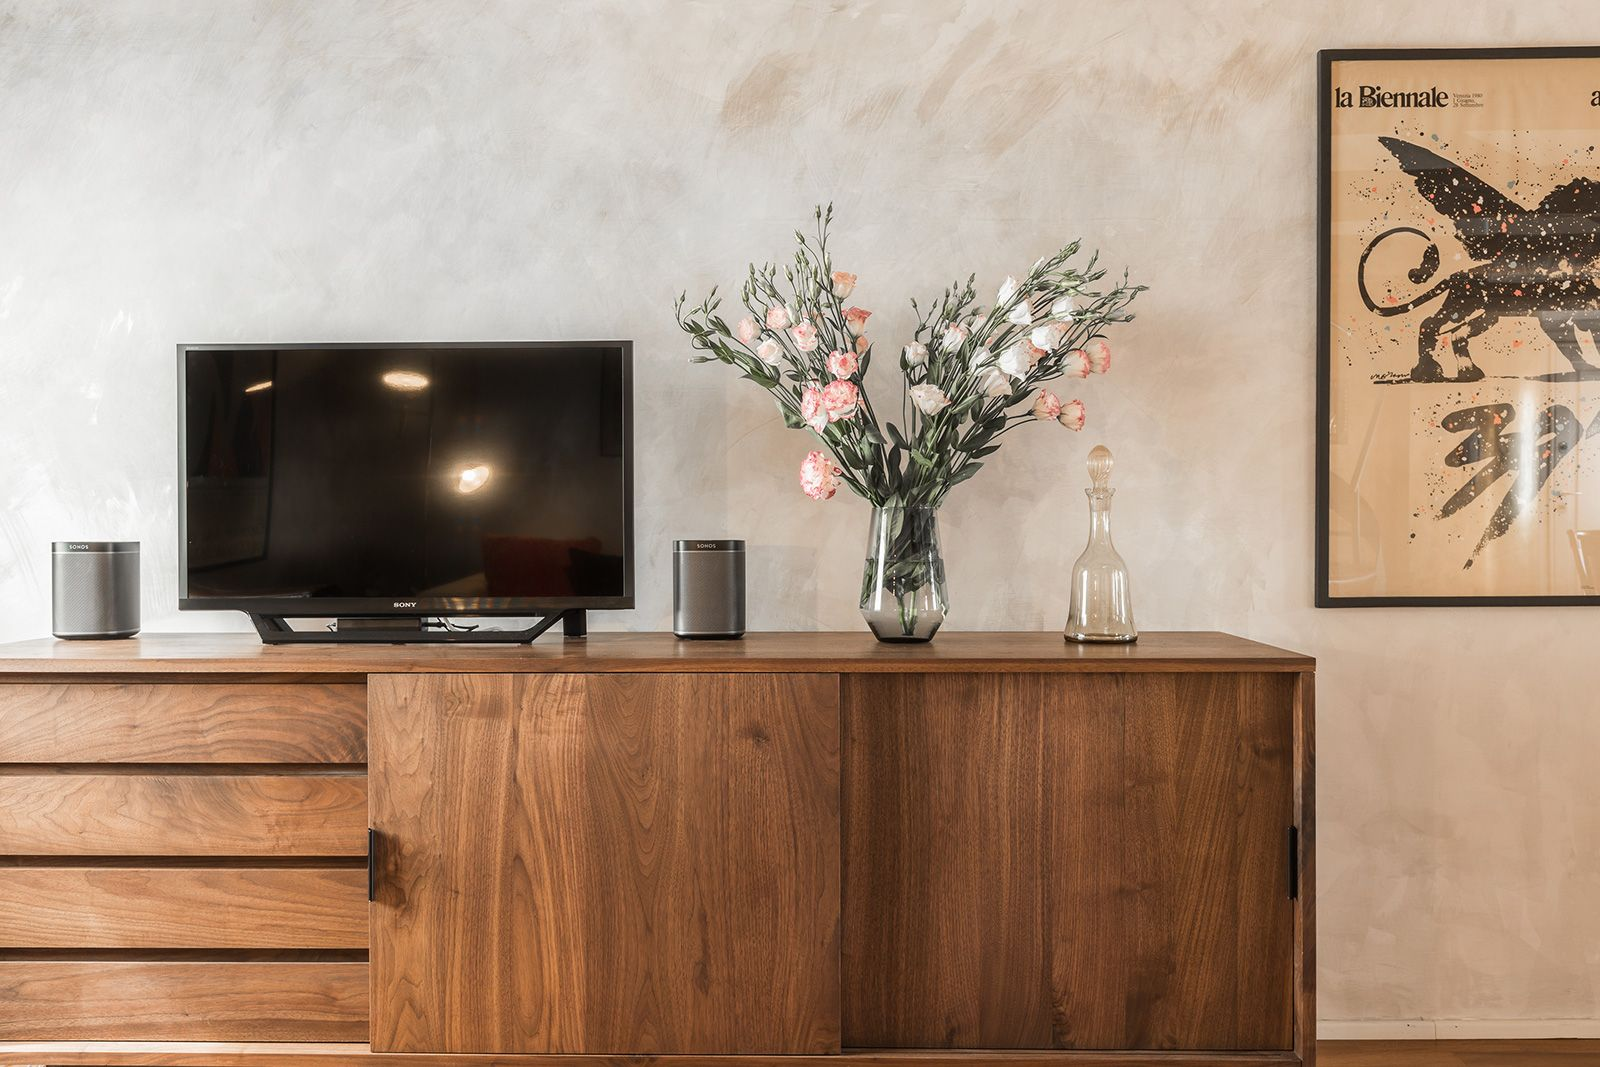 Wi-Fi, Led TV and Sonos sound system are only some of the high-tech amenities